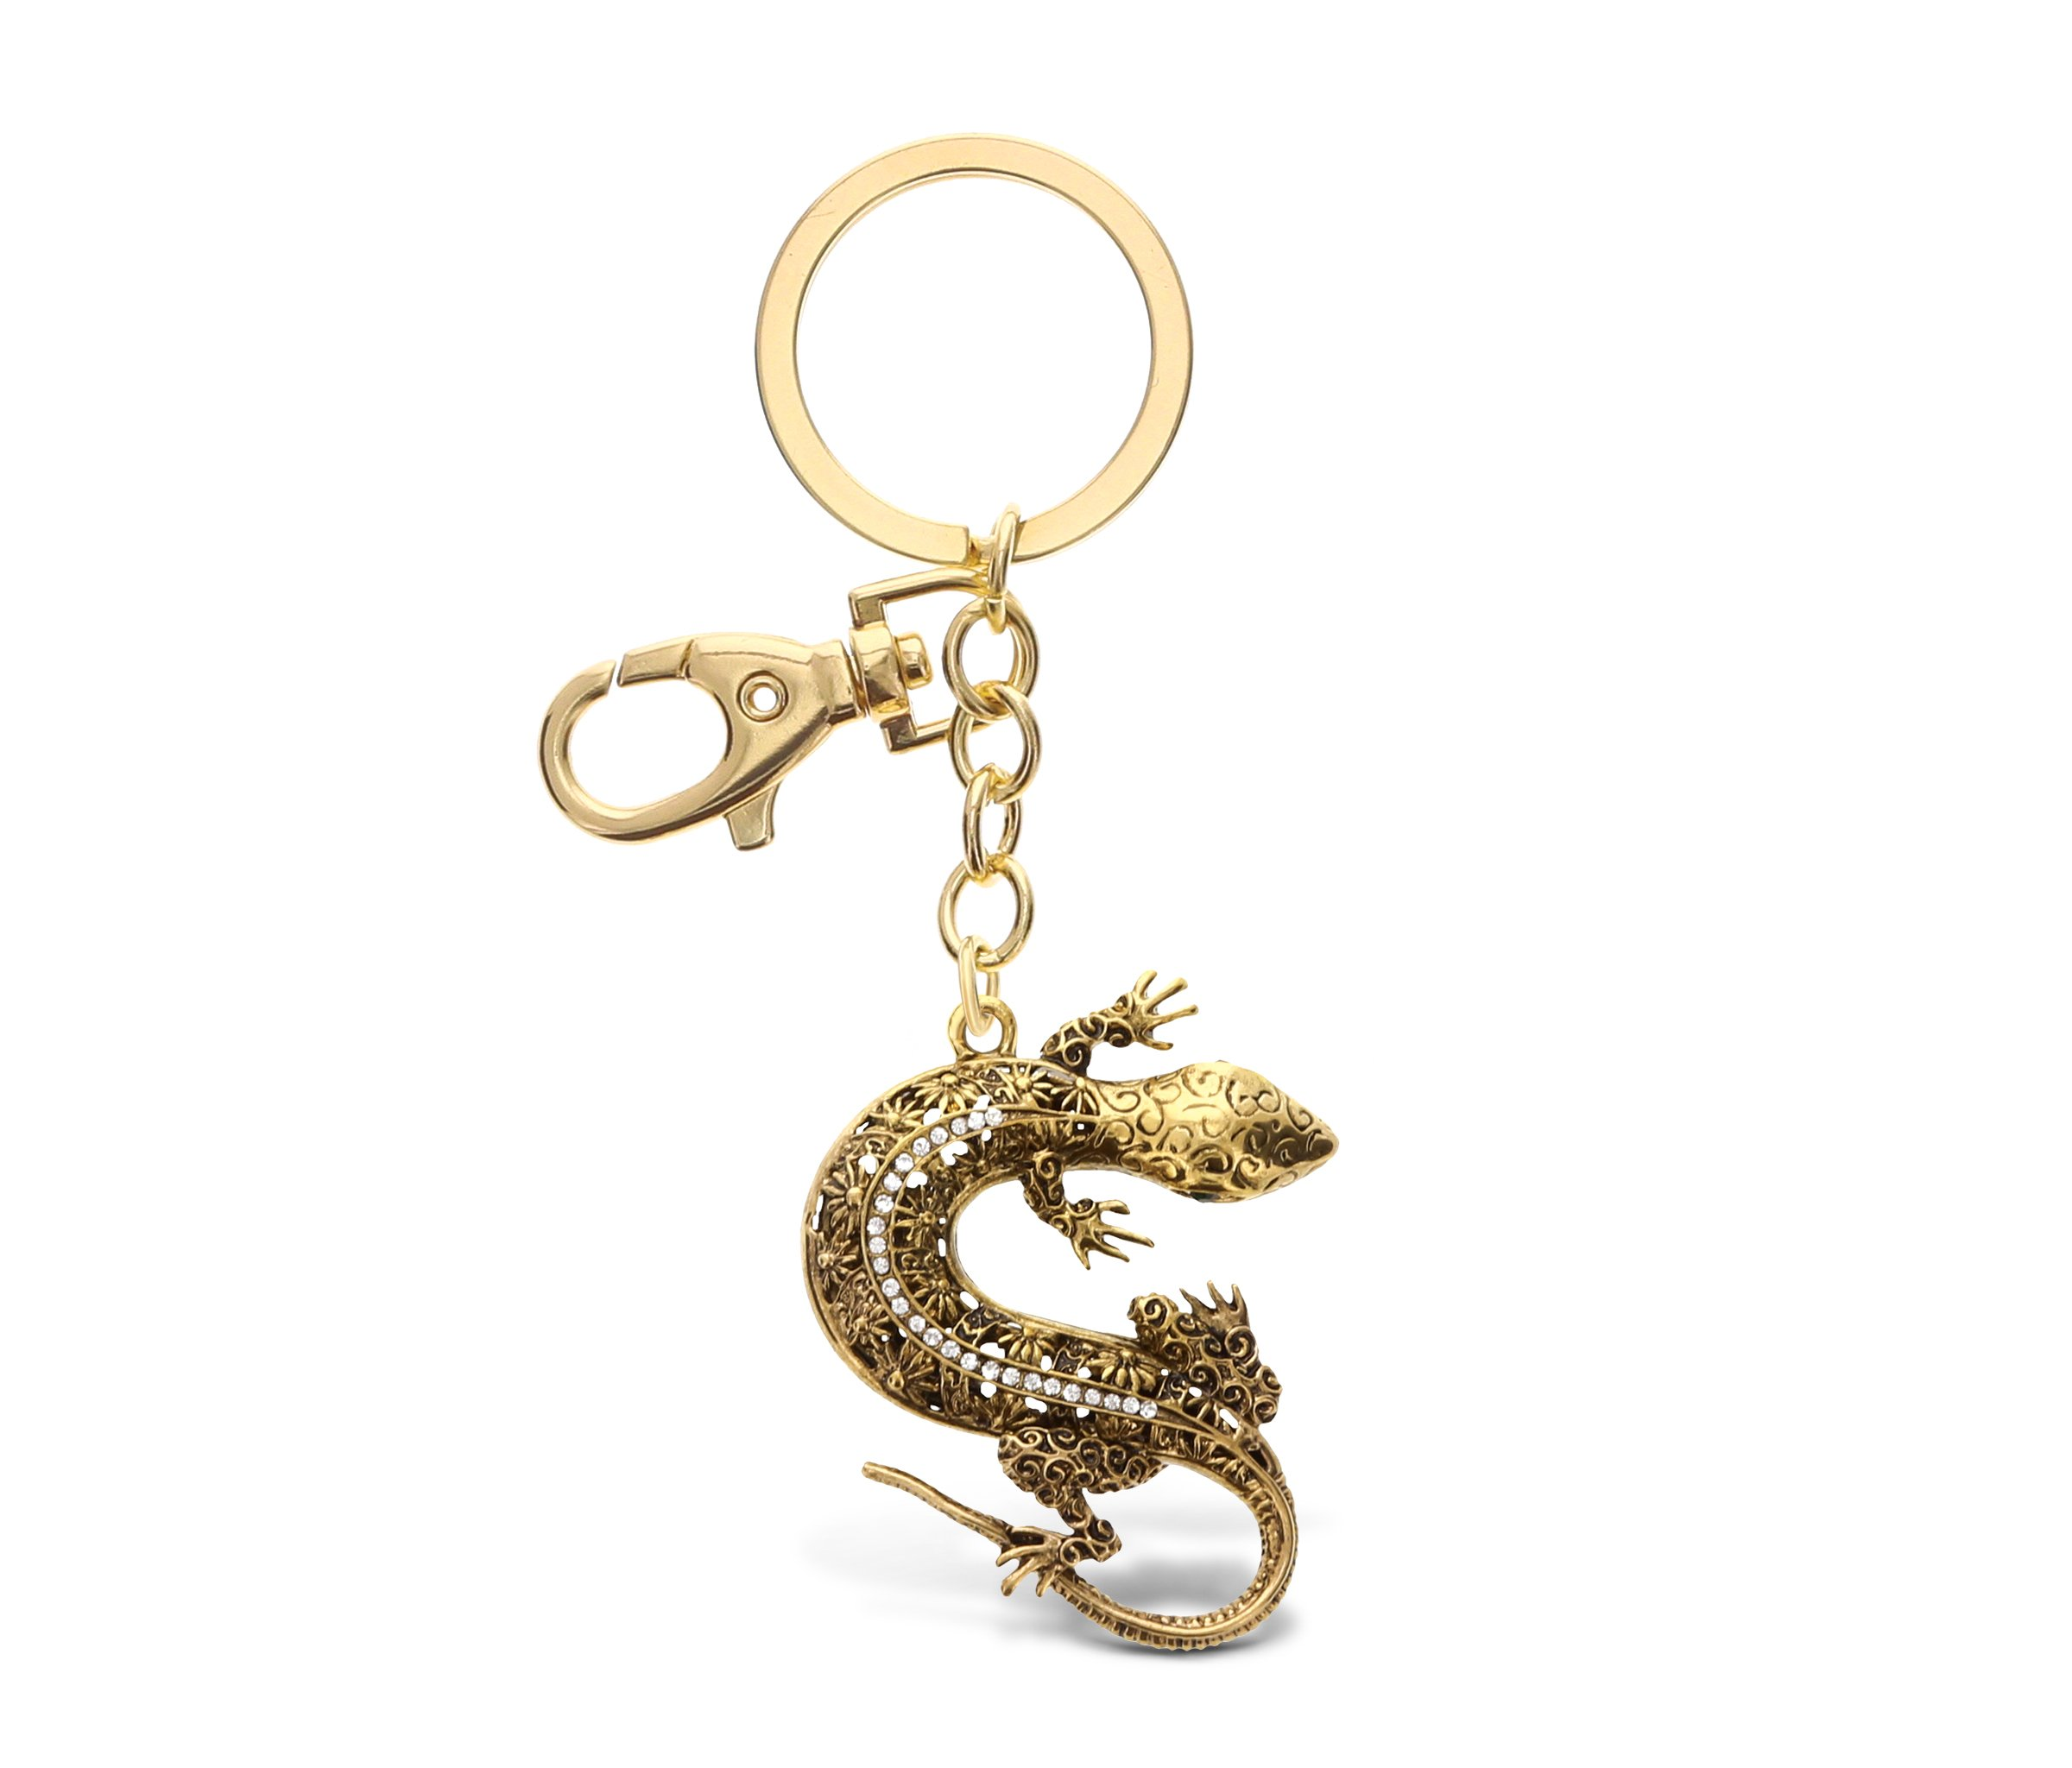 CoTa Global Gold Gecko Lizard Sparkling Metal Charm - Unique Vintage Style Pendant Keychain Stylish Elegant Fob in Crystal Studs 6.5 Inch Bag and Keys Office Or School Accessory - Item 6676-10